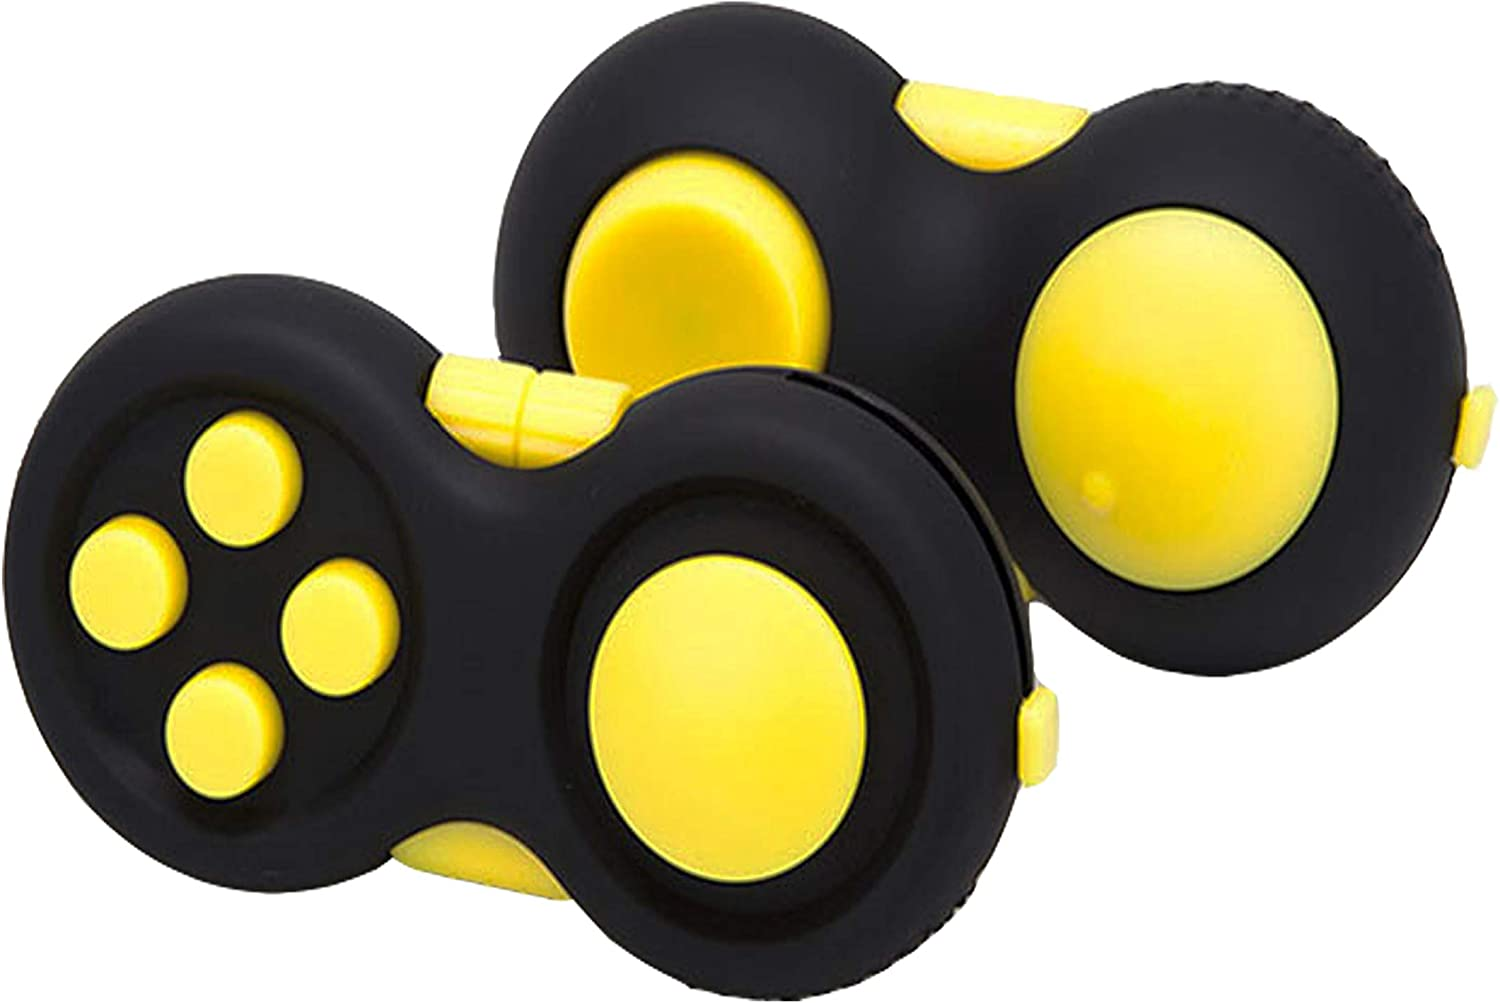 Anxiety and Stress Relief 9 Fidget Features Prime Ready and Shipped by ADHD Multi Color Rainbow on Black Perfect for Skin Picking ADD glacely 3pack Fidget Pad